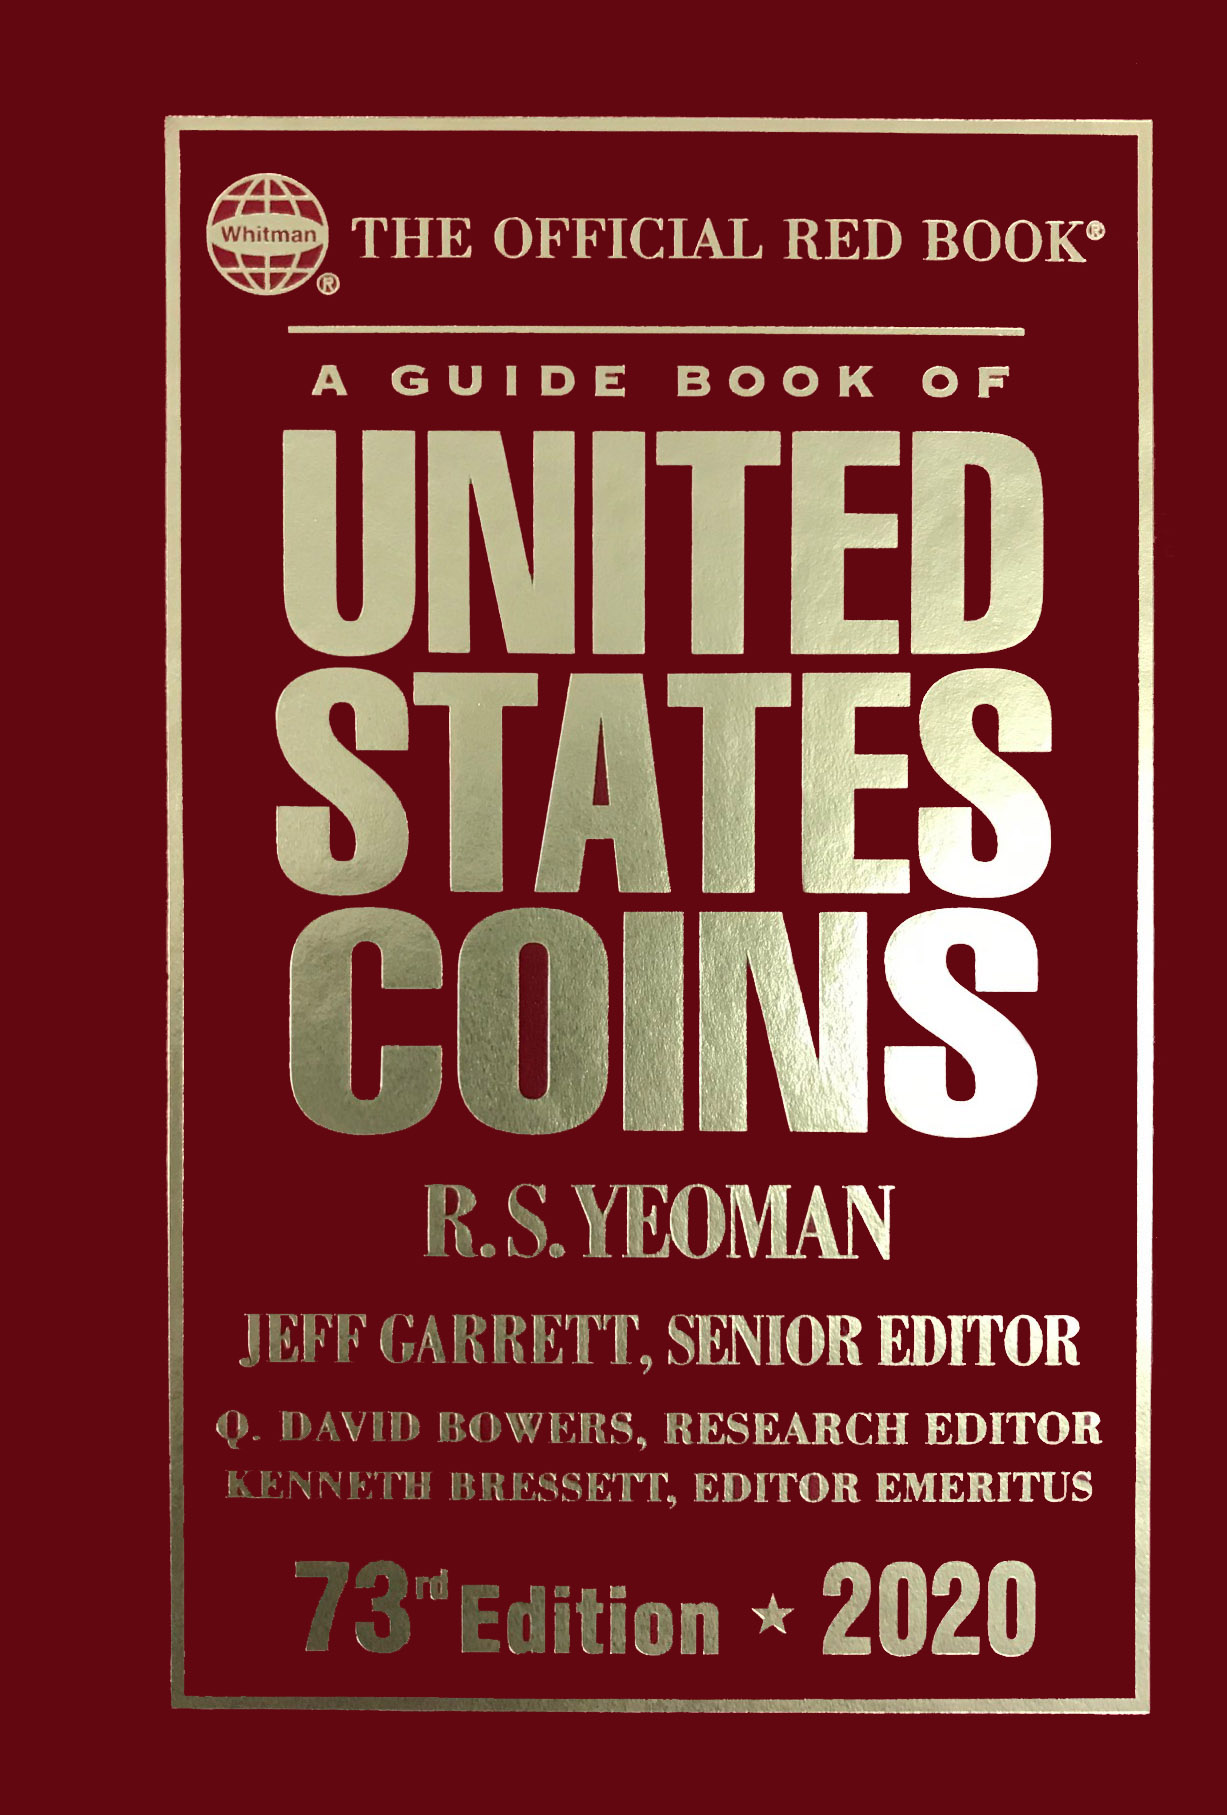 The Red Book. A Guide Book of United States Coins, 2020.